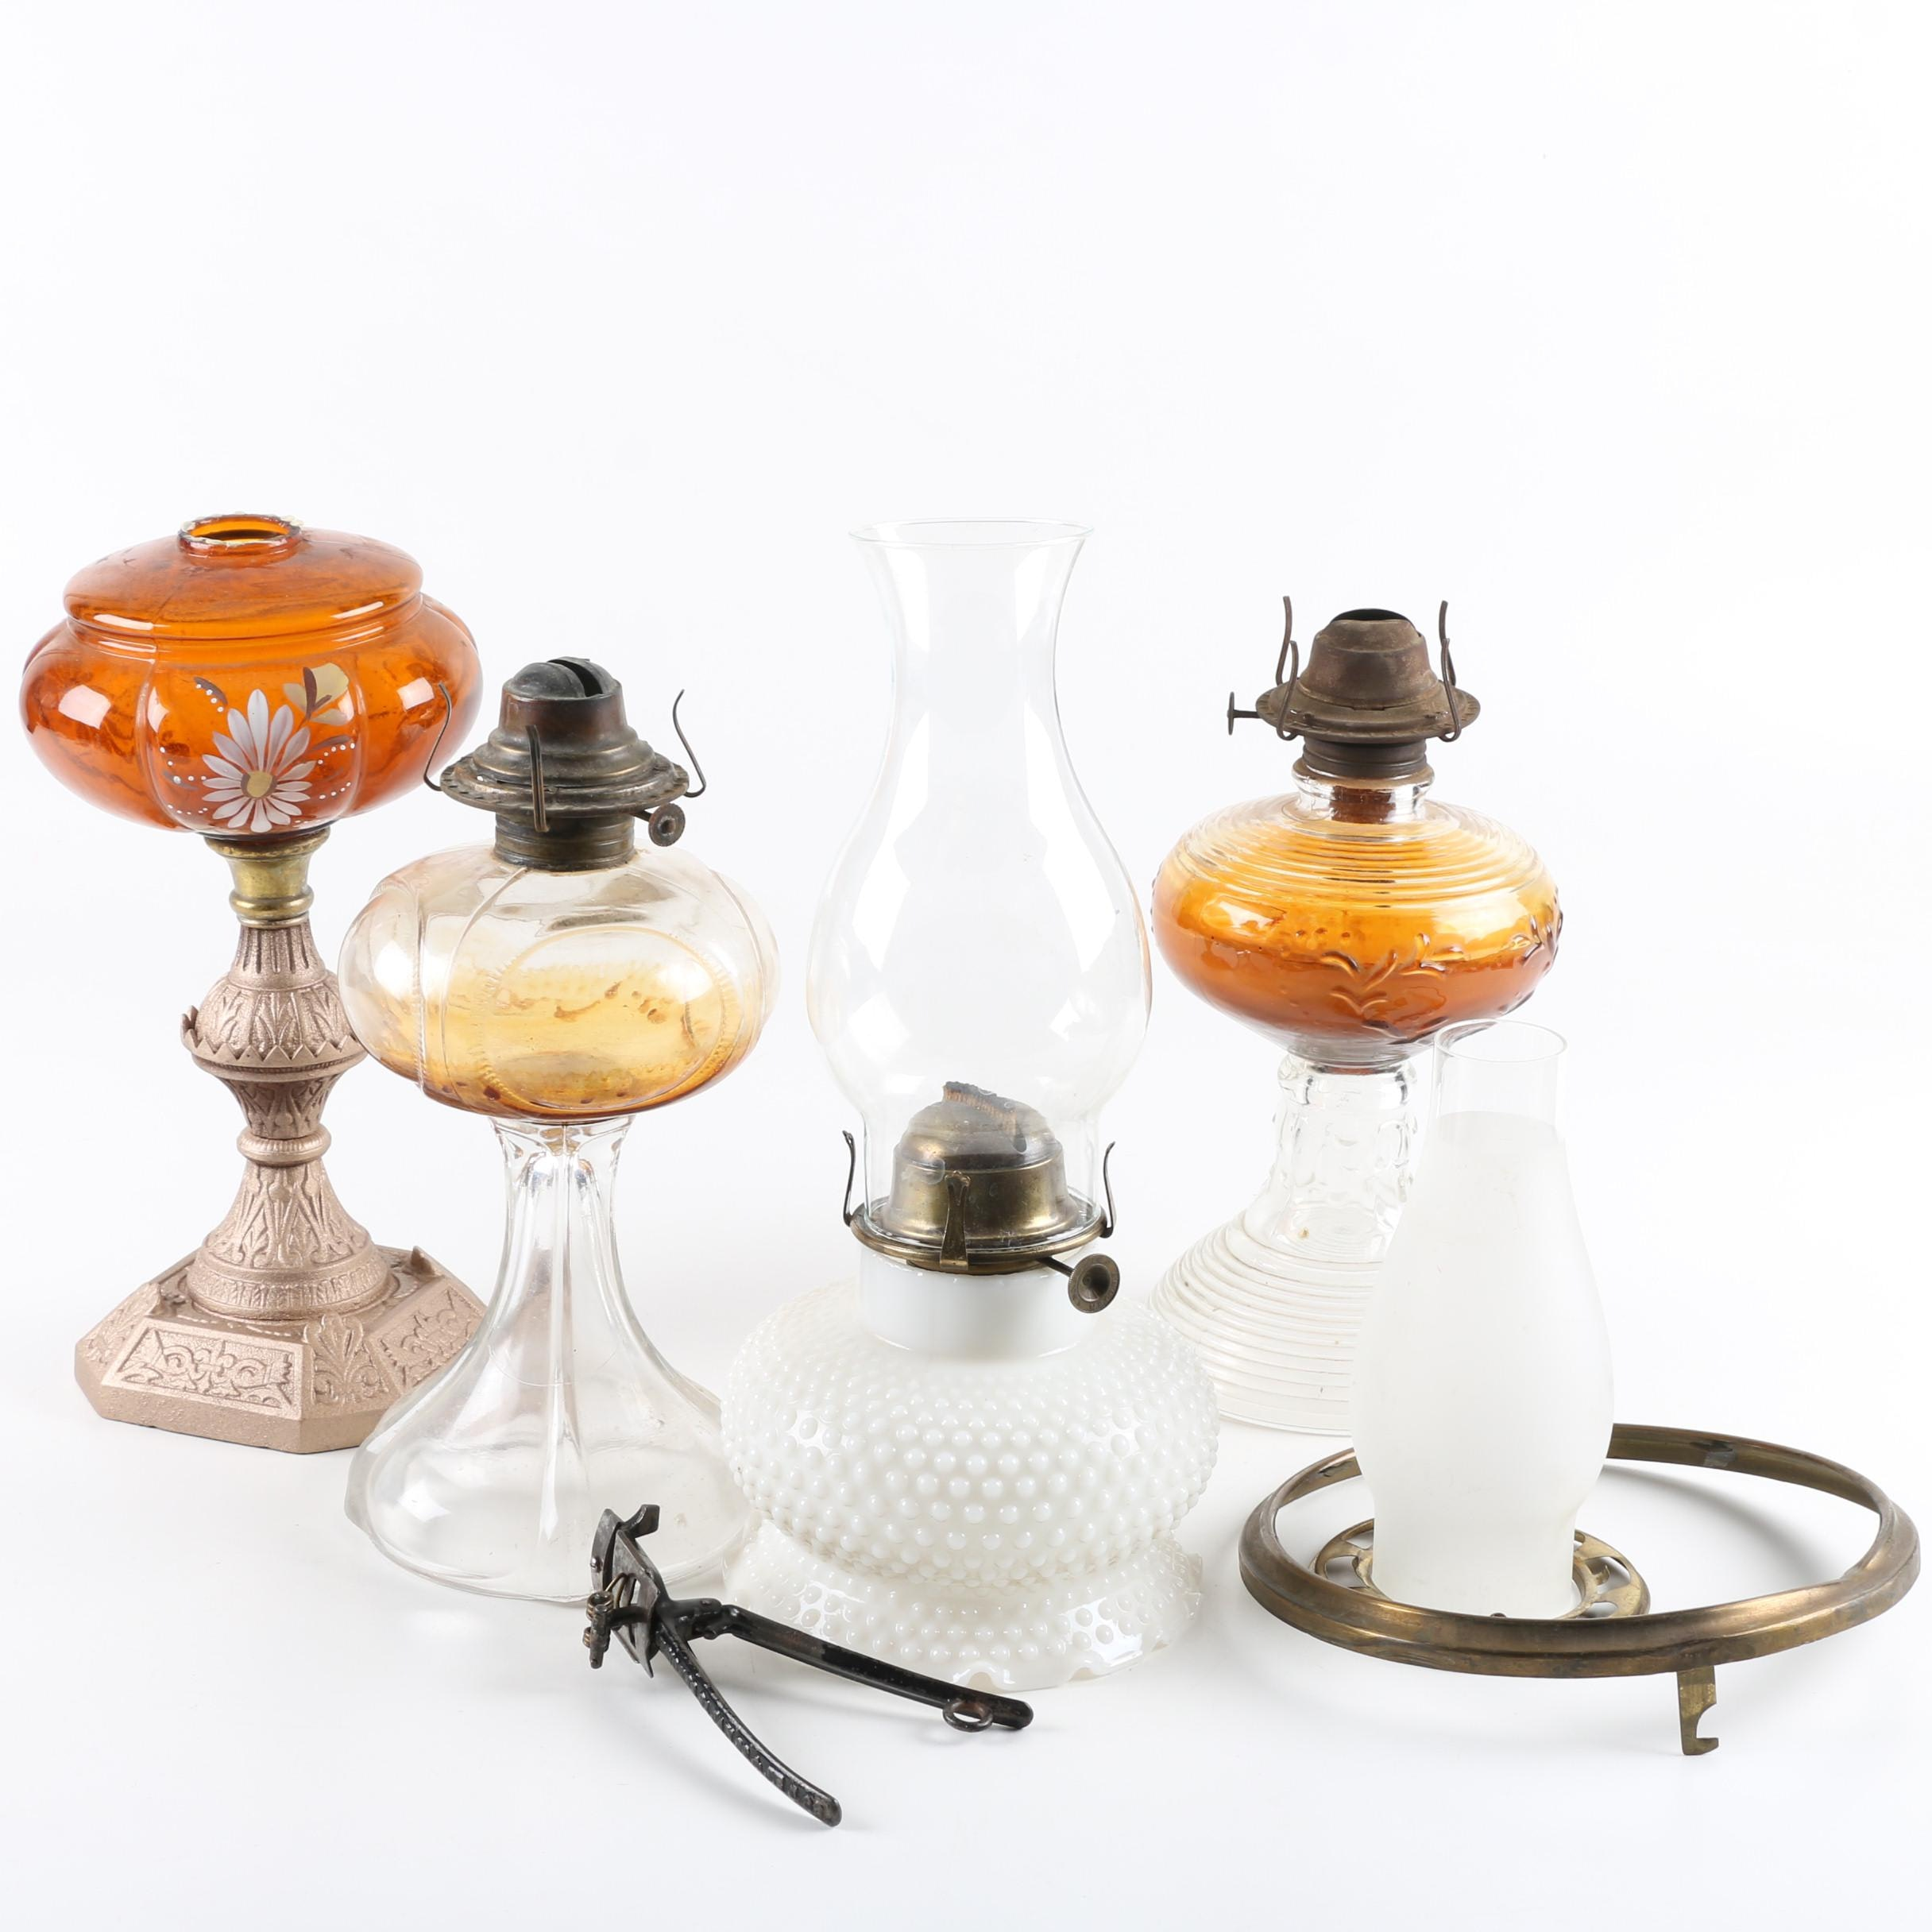 Vintage Oil Lamps and Shades Including Milk Glass